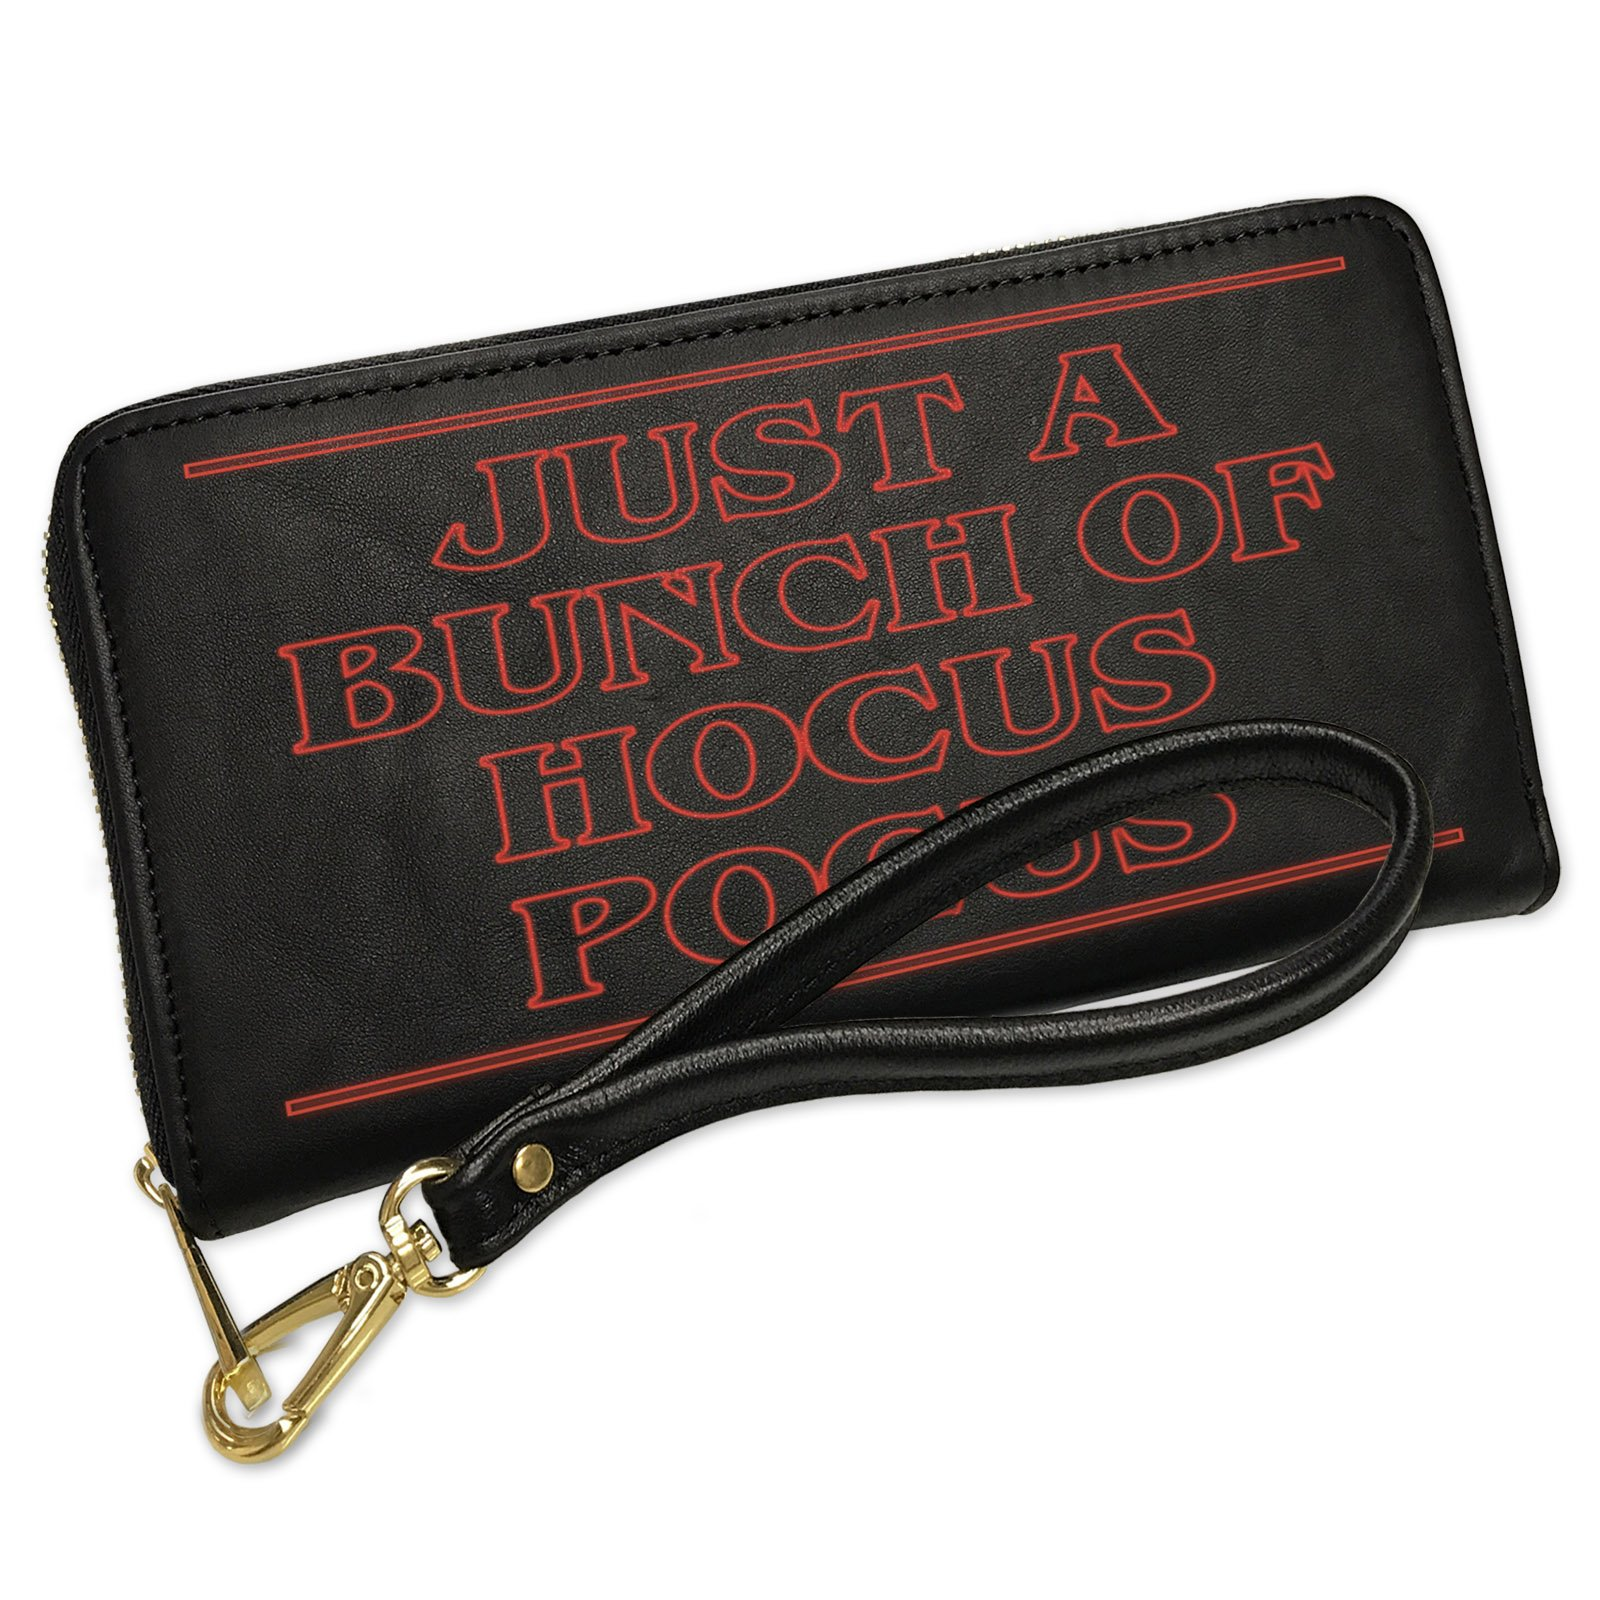 Wallet Clutch Just A Bunch of Hocus Pocus Halloween Strange and Spooky with Removable Wristlet Strap Neonblond